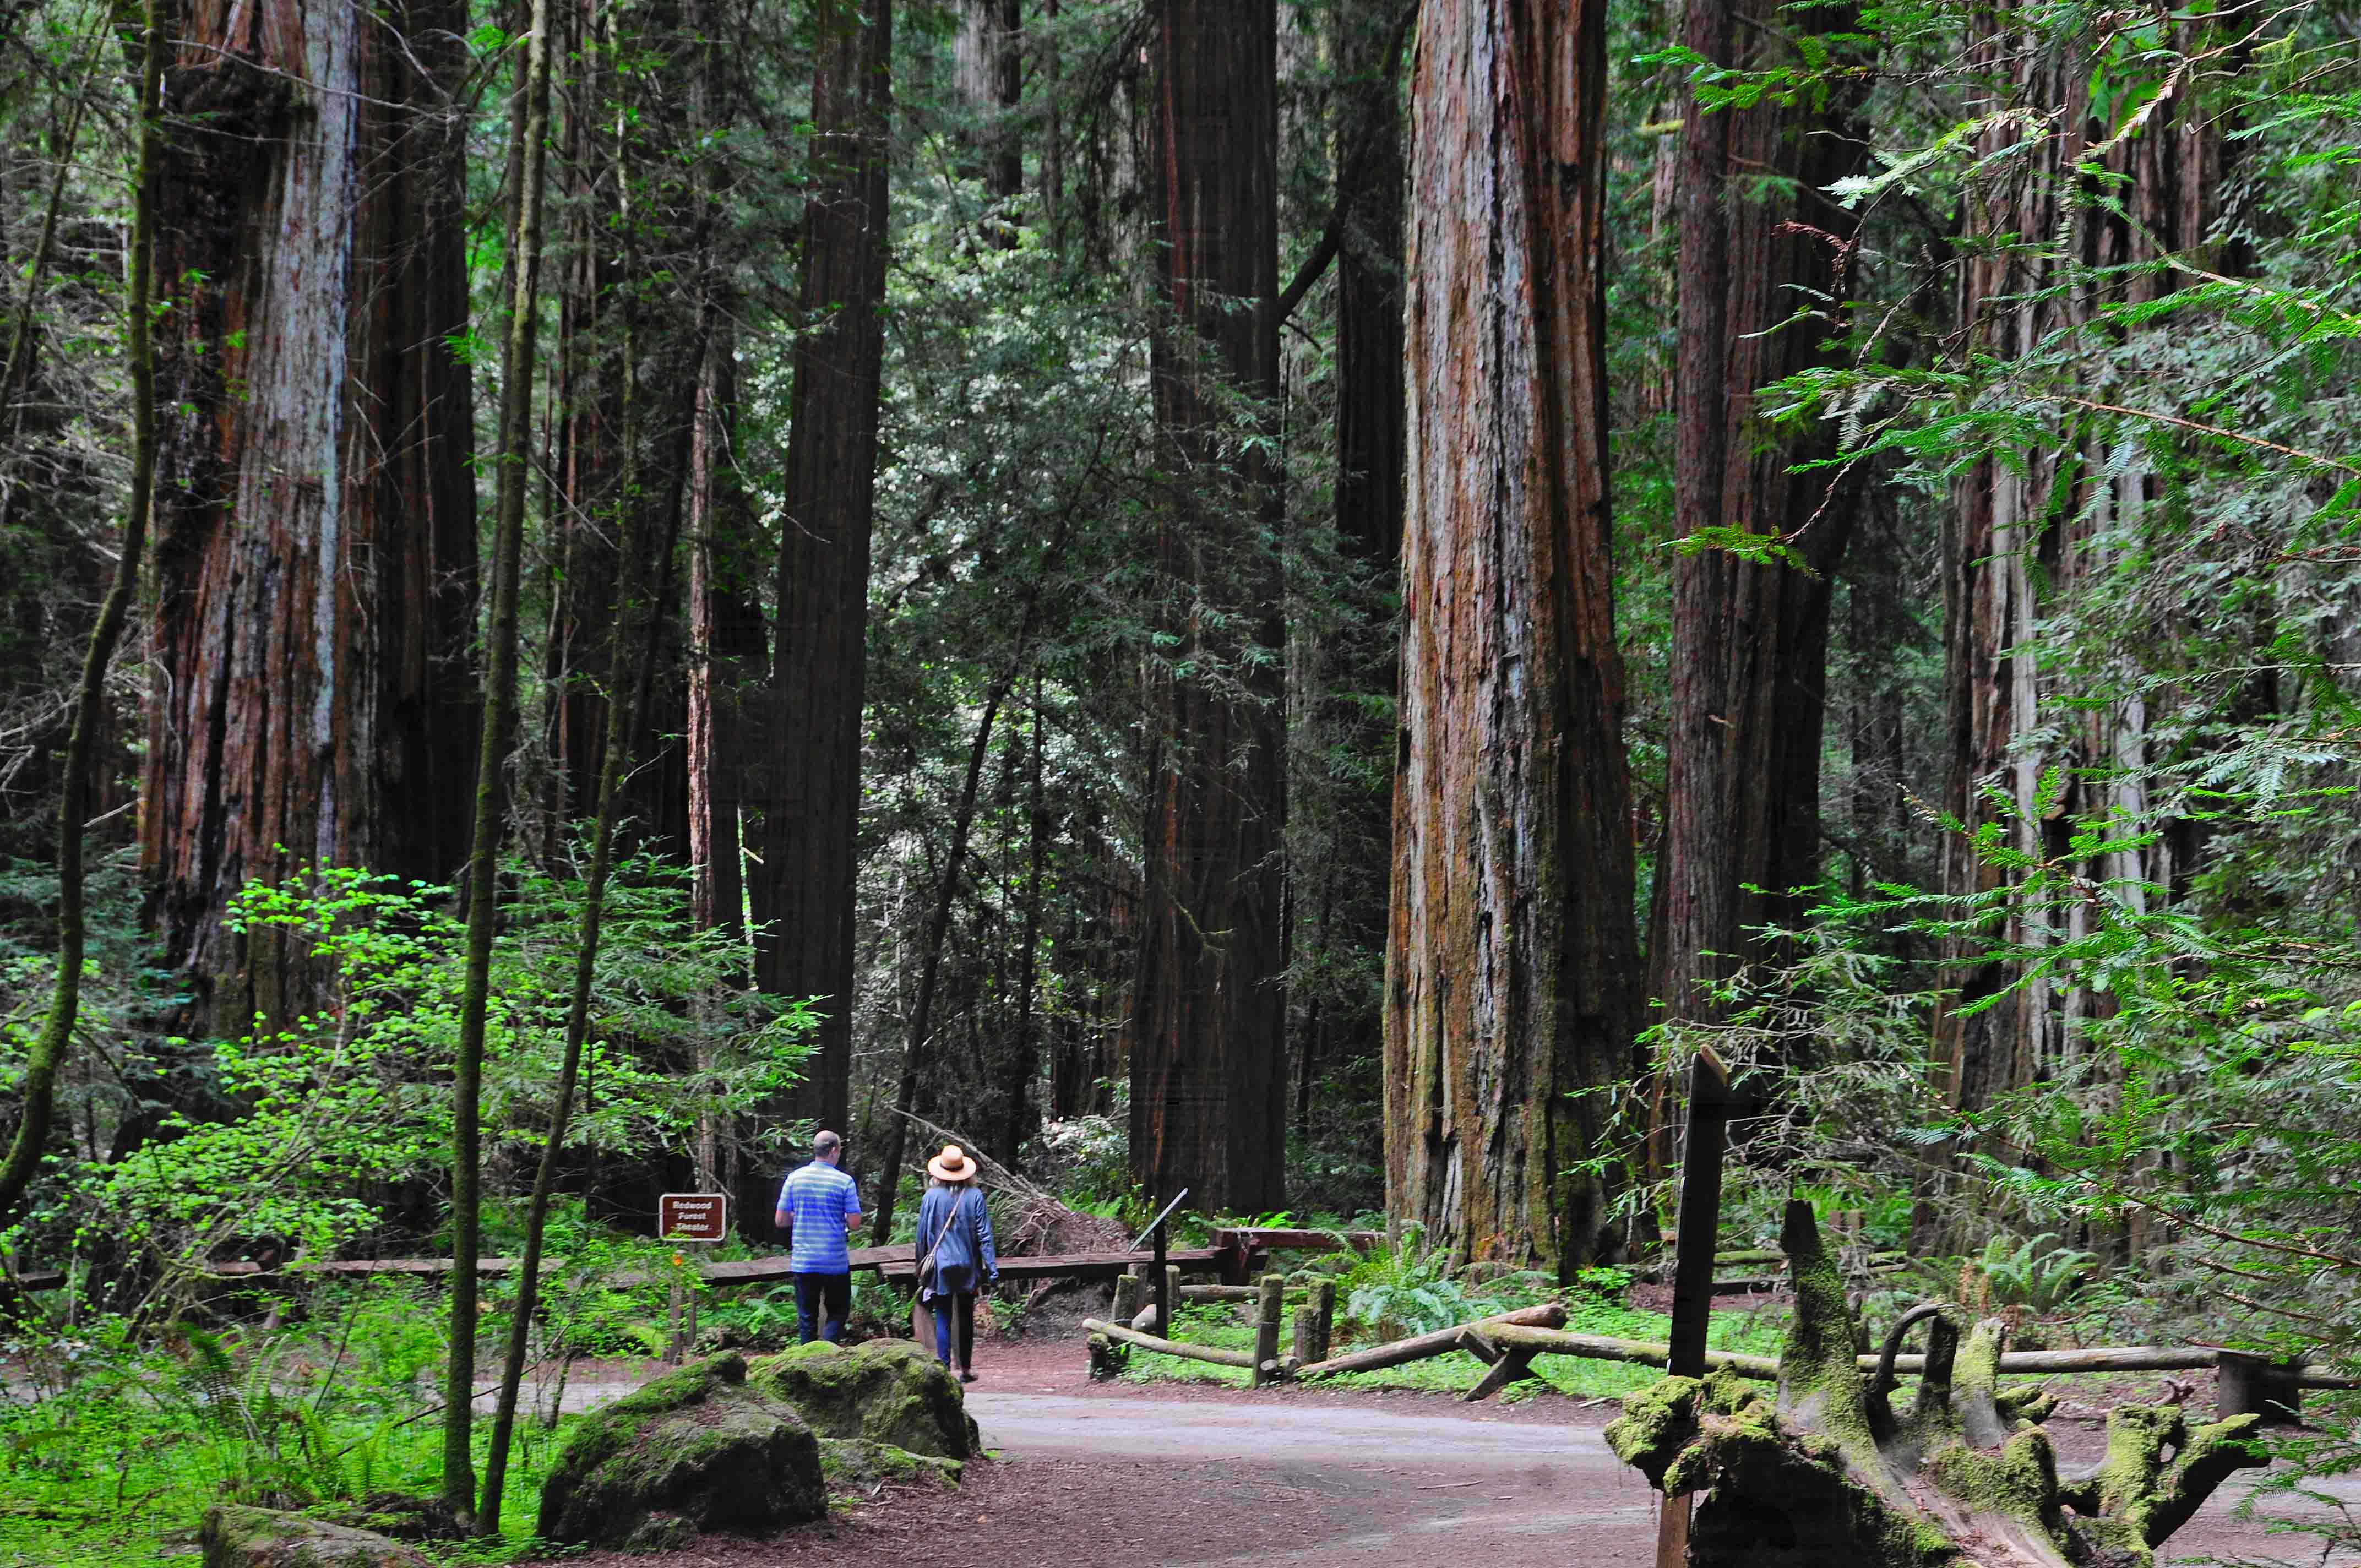 Visit the 1,000 year-old Sequoia trees in Armstrong Redwoods State Natural Reserve. Photo: Sonoma County Tourism.